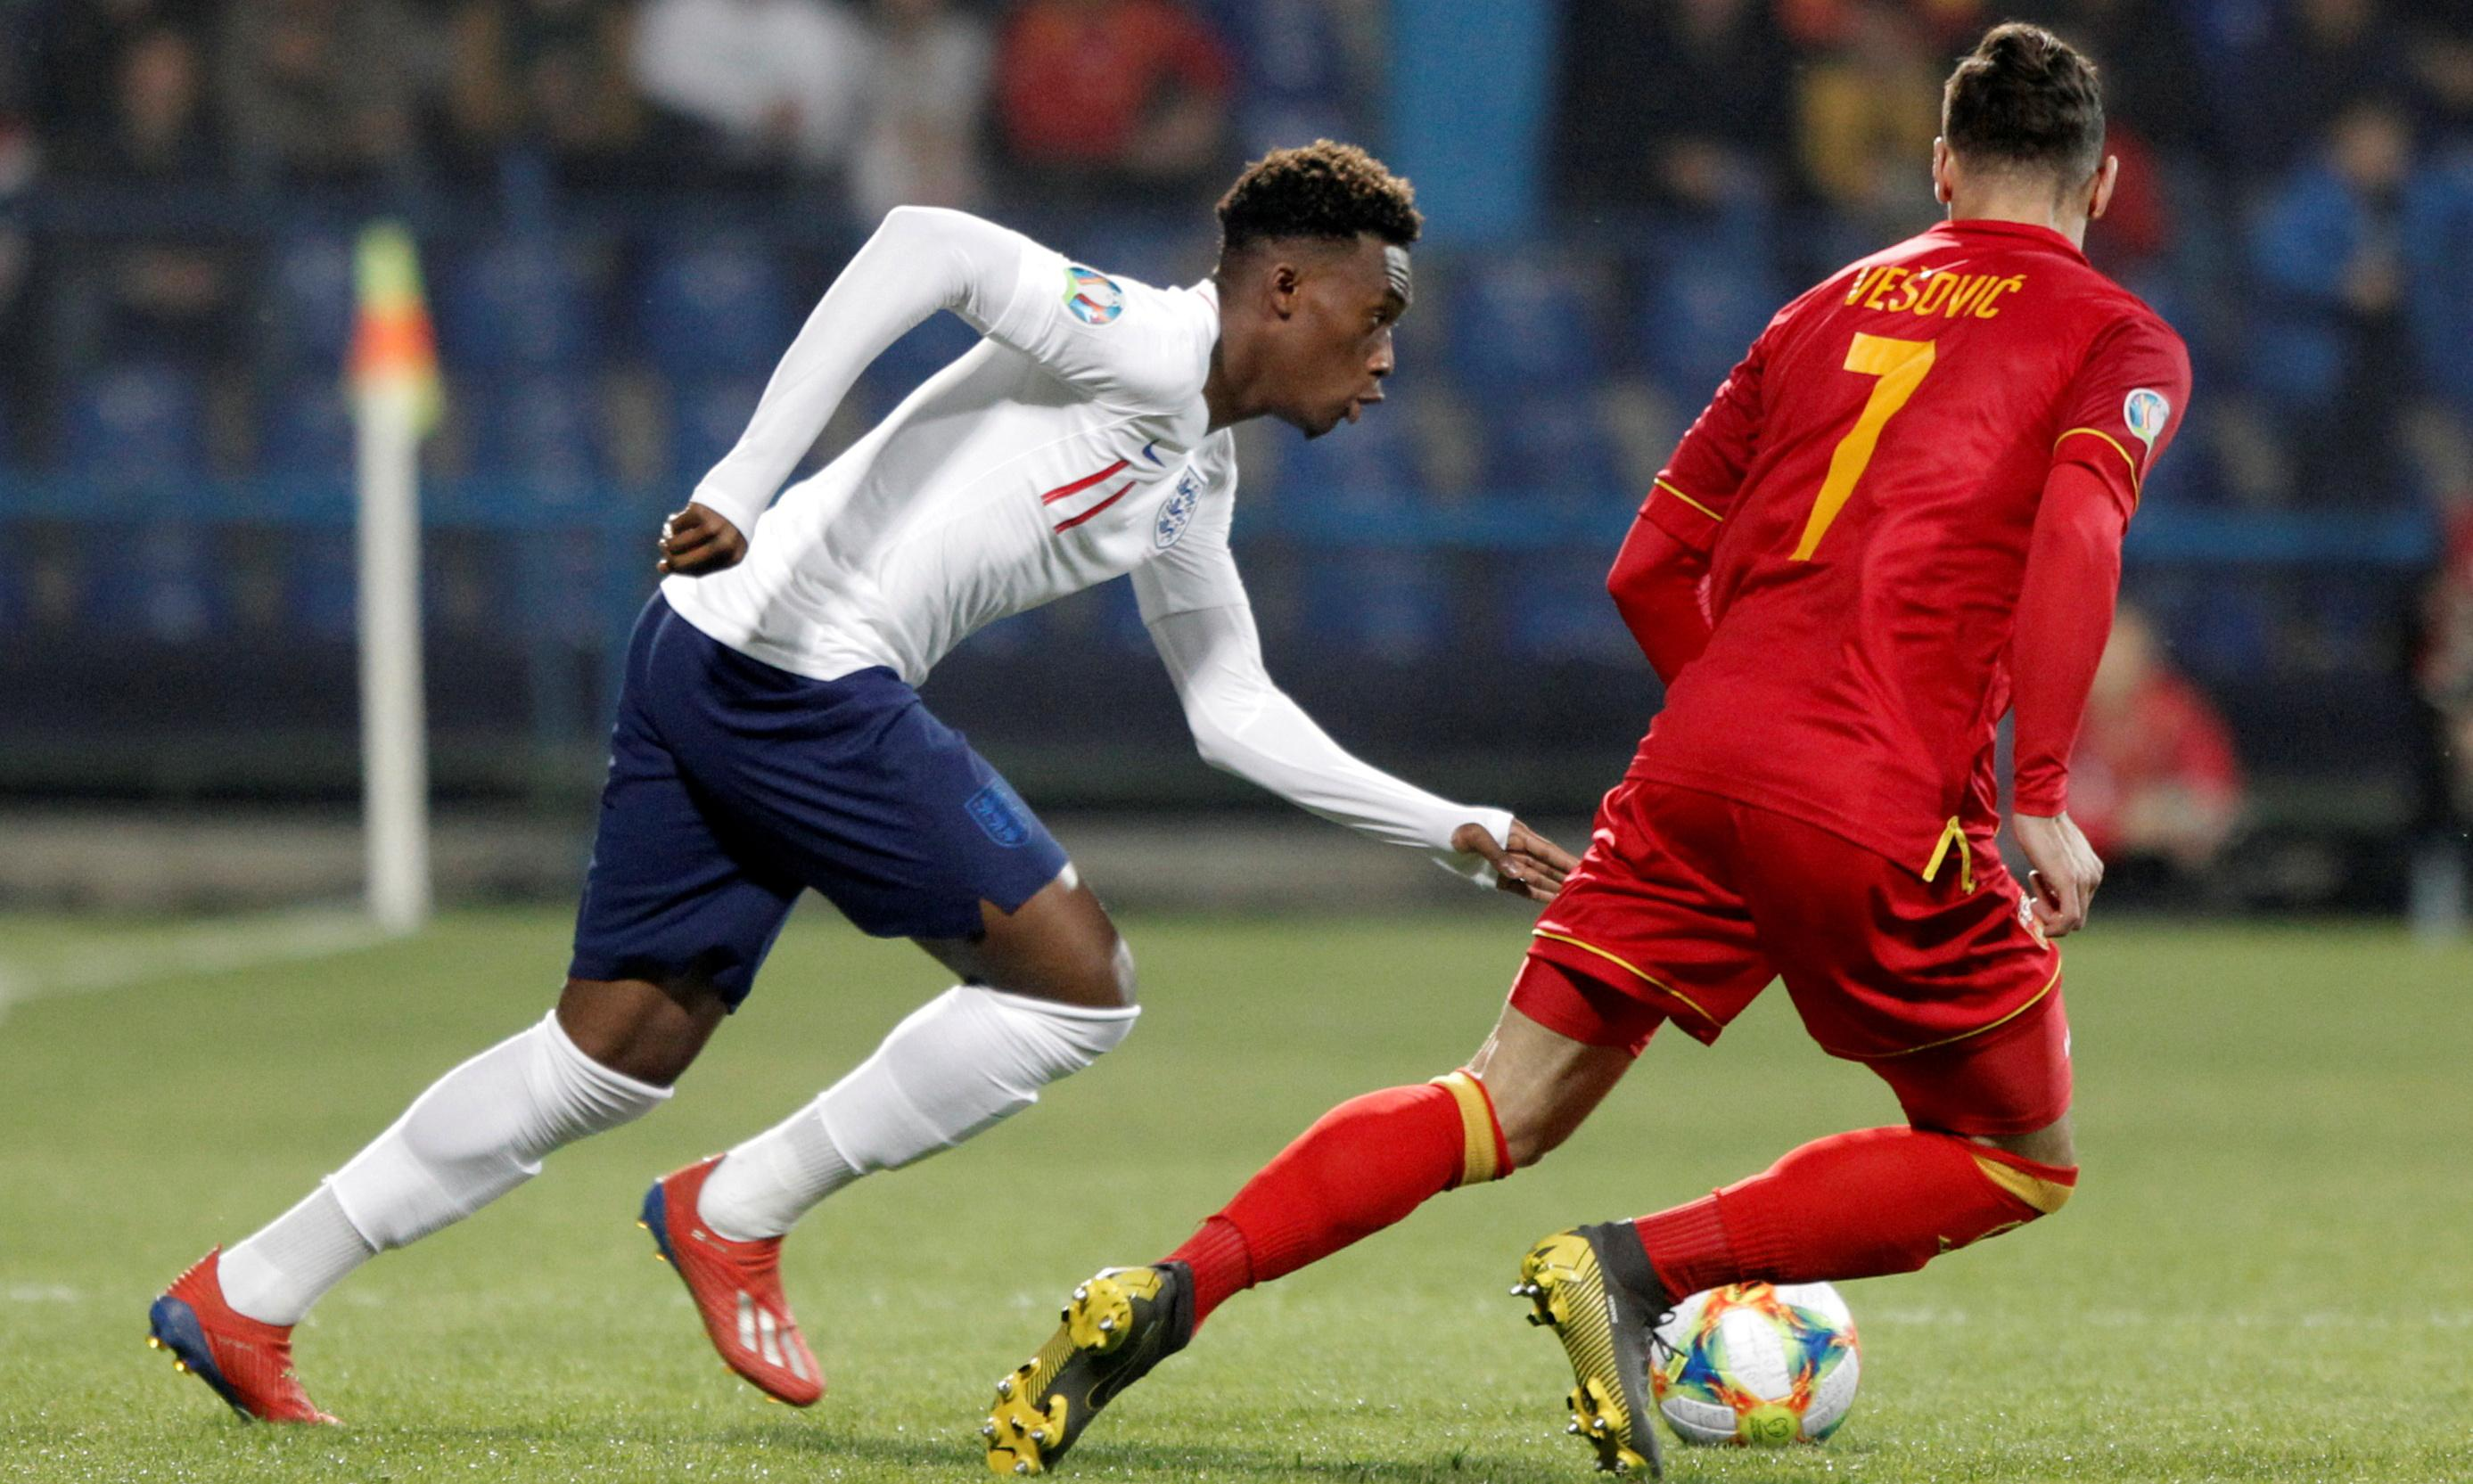 Callum Hudson-Odoi dazzles in the limelight on his first England start